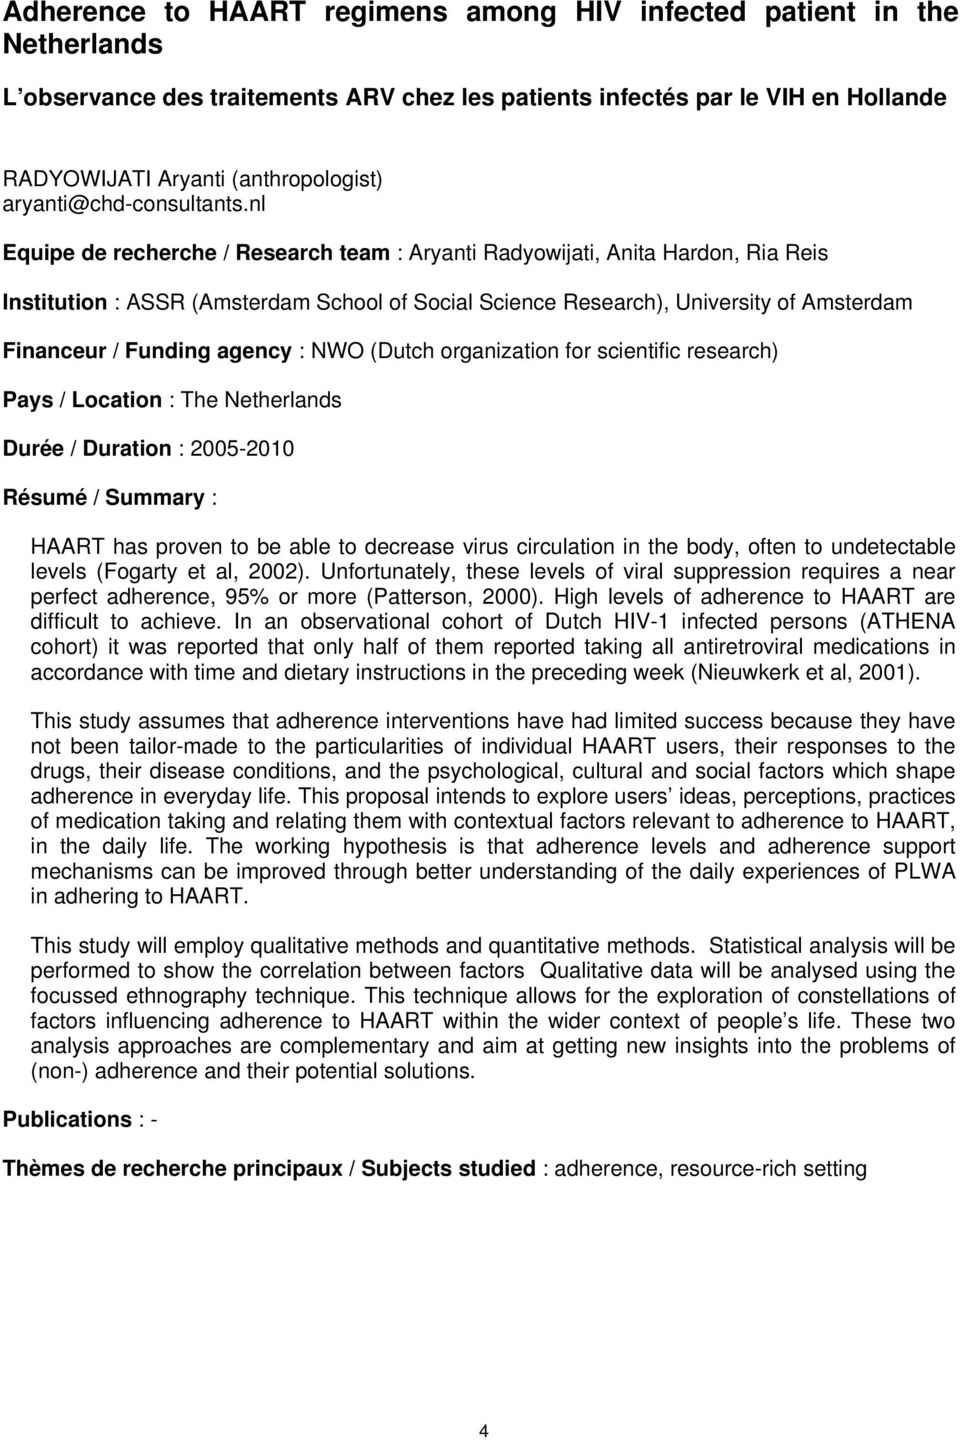 nl Equipe de recherche / Research team : Aryanti Radyowijati, Anita Hardon, Ria Reis Institution : ASSR (Amsterdam School of Social Science Research), University of Amsterdam Financeur / Funding